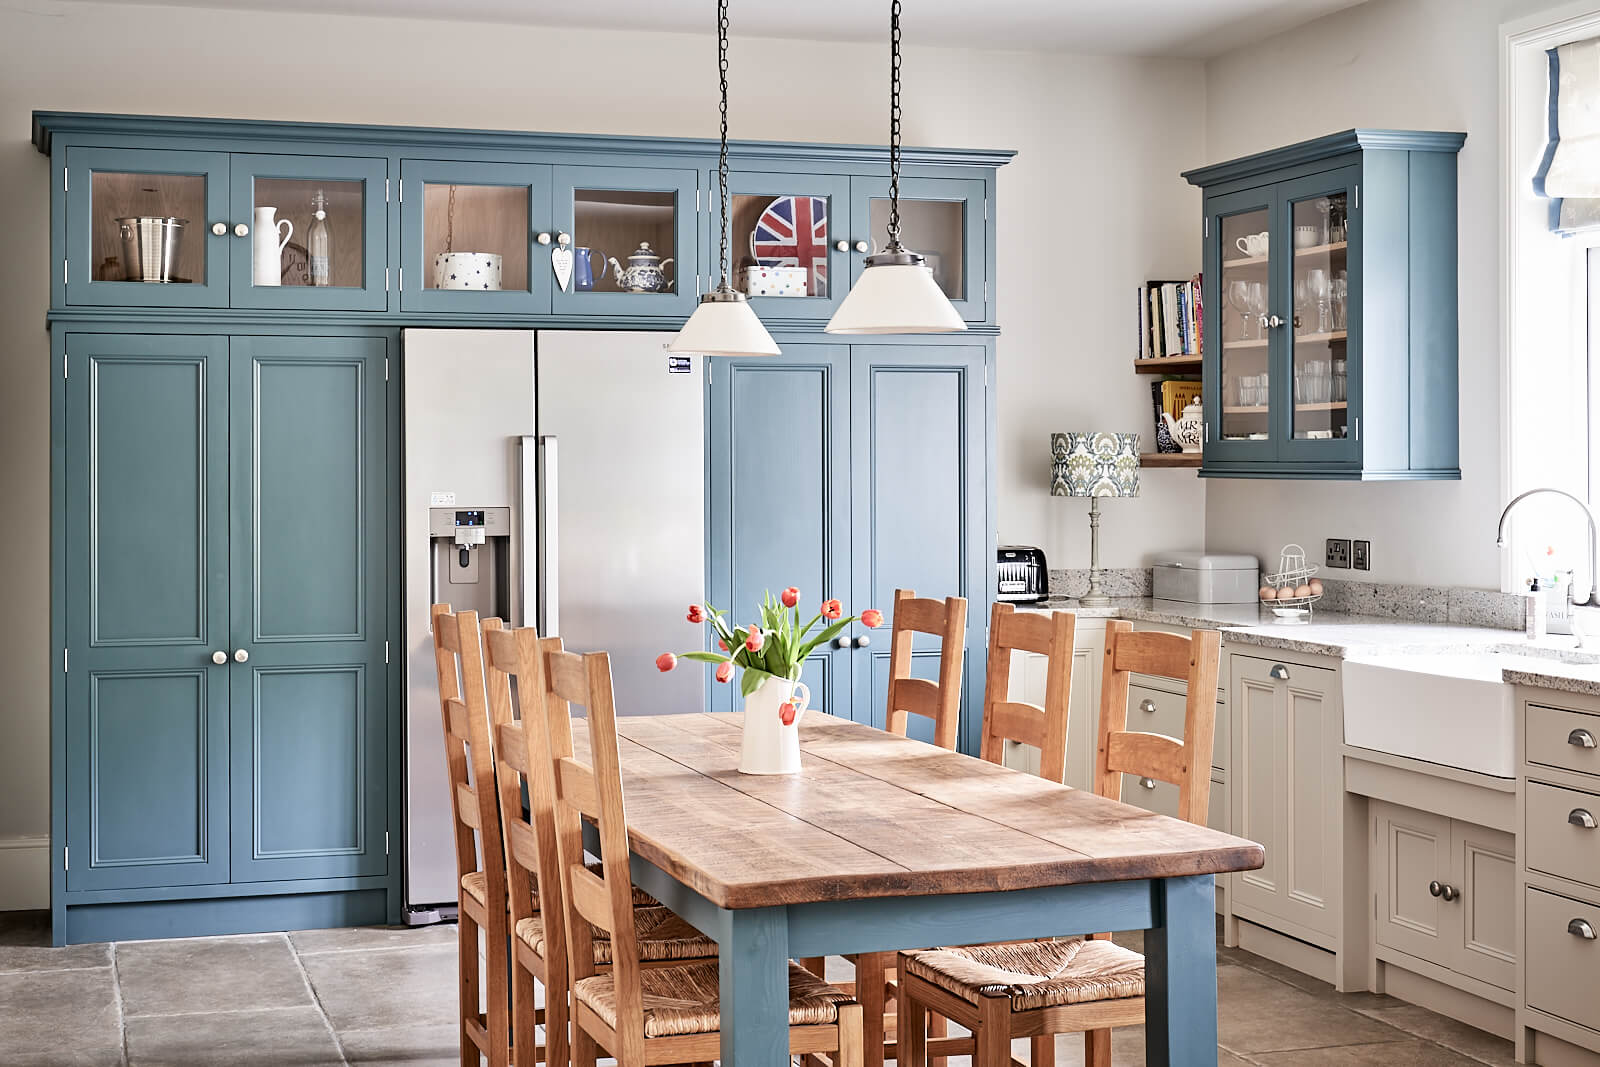 thorpe-tilney-kitchen2-hill-farm-furniture